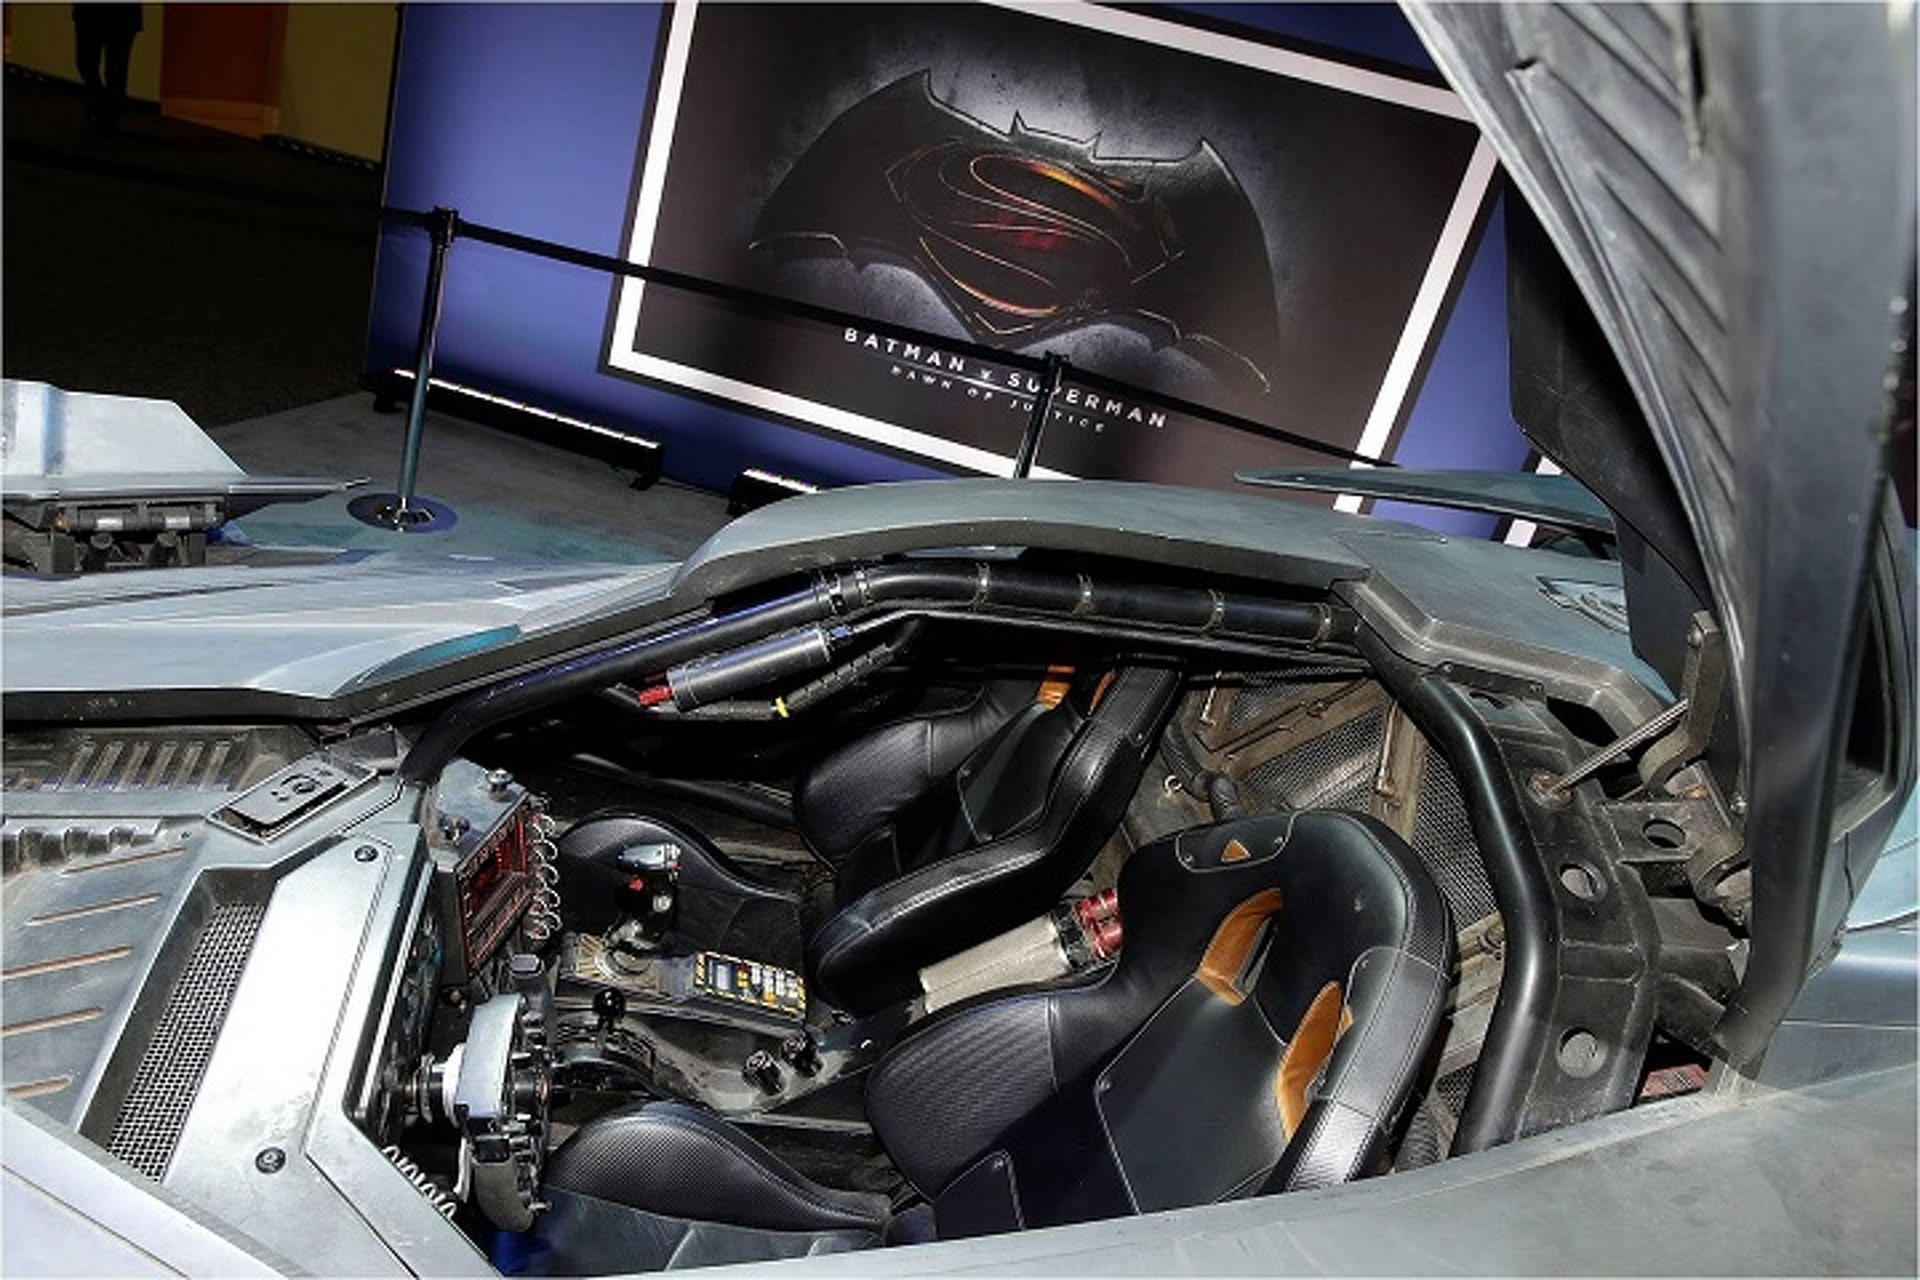 Get All The Details on The 'Batman v Superman' Batmobile